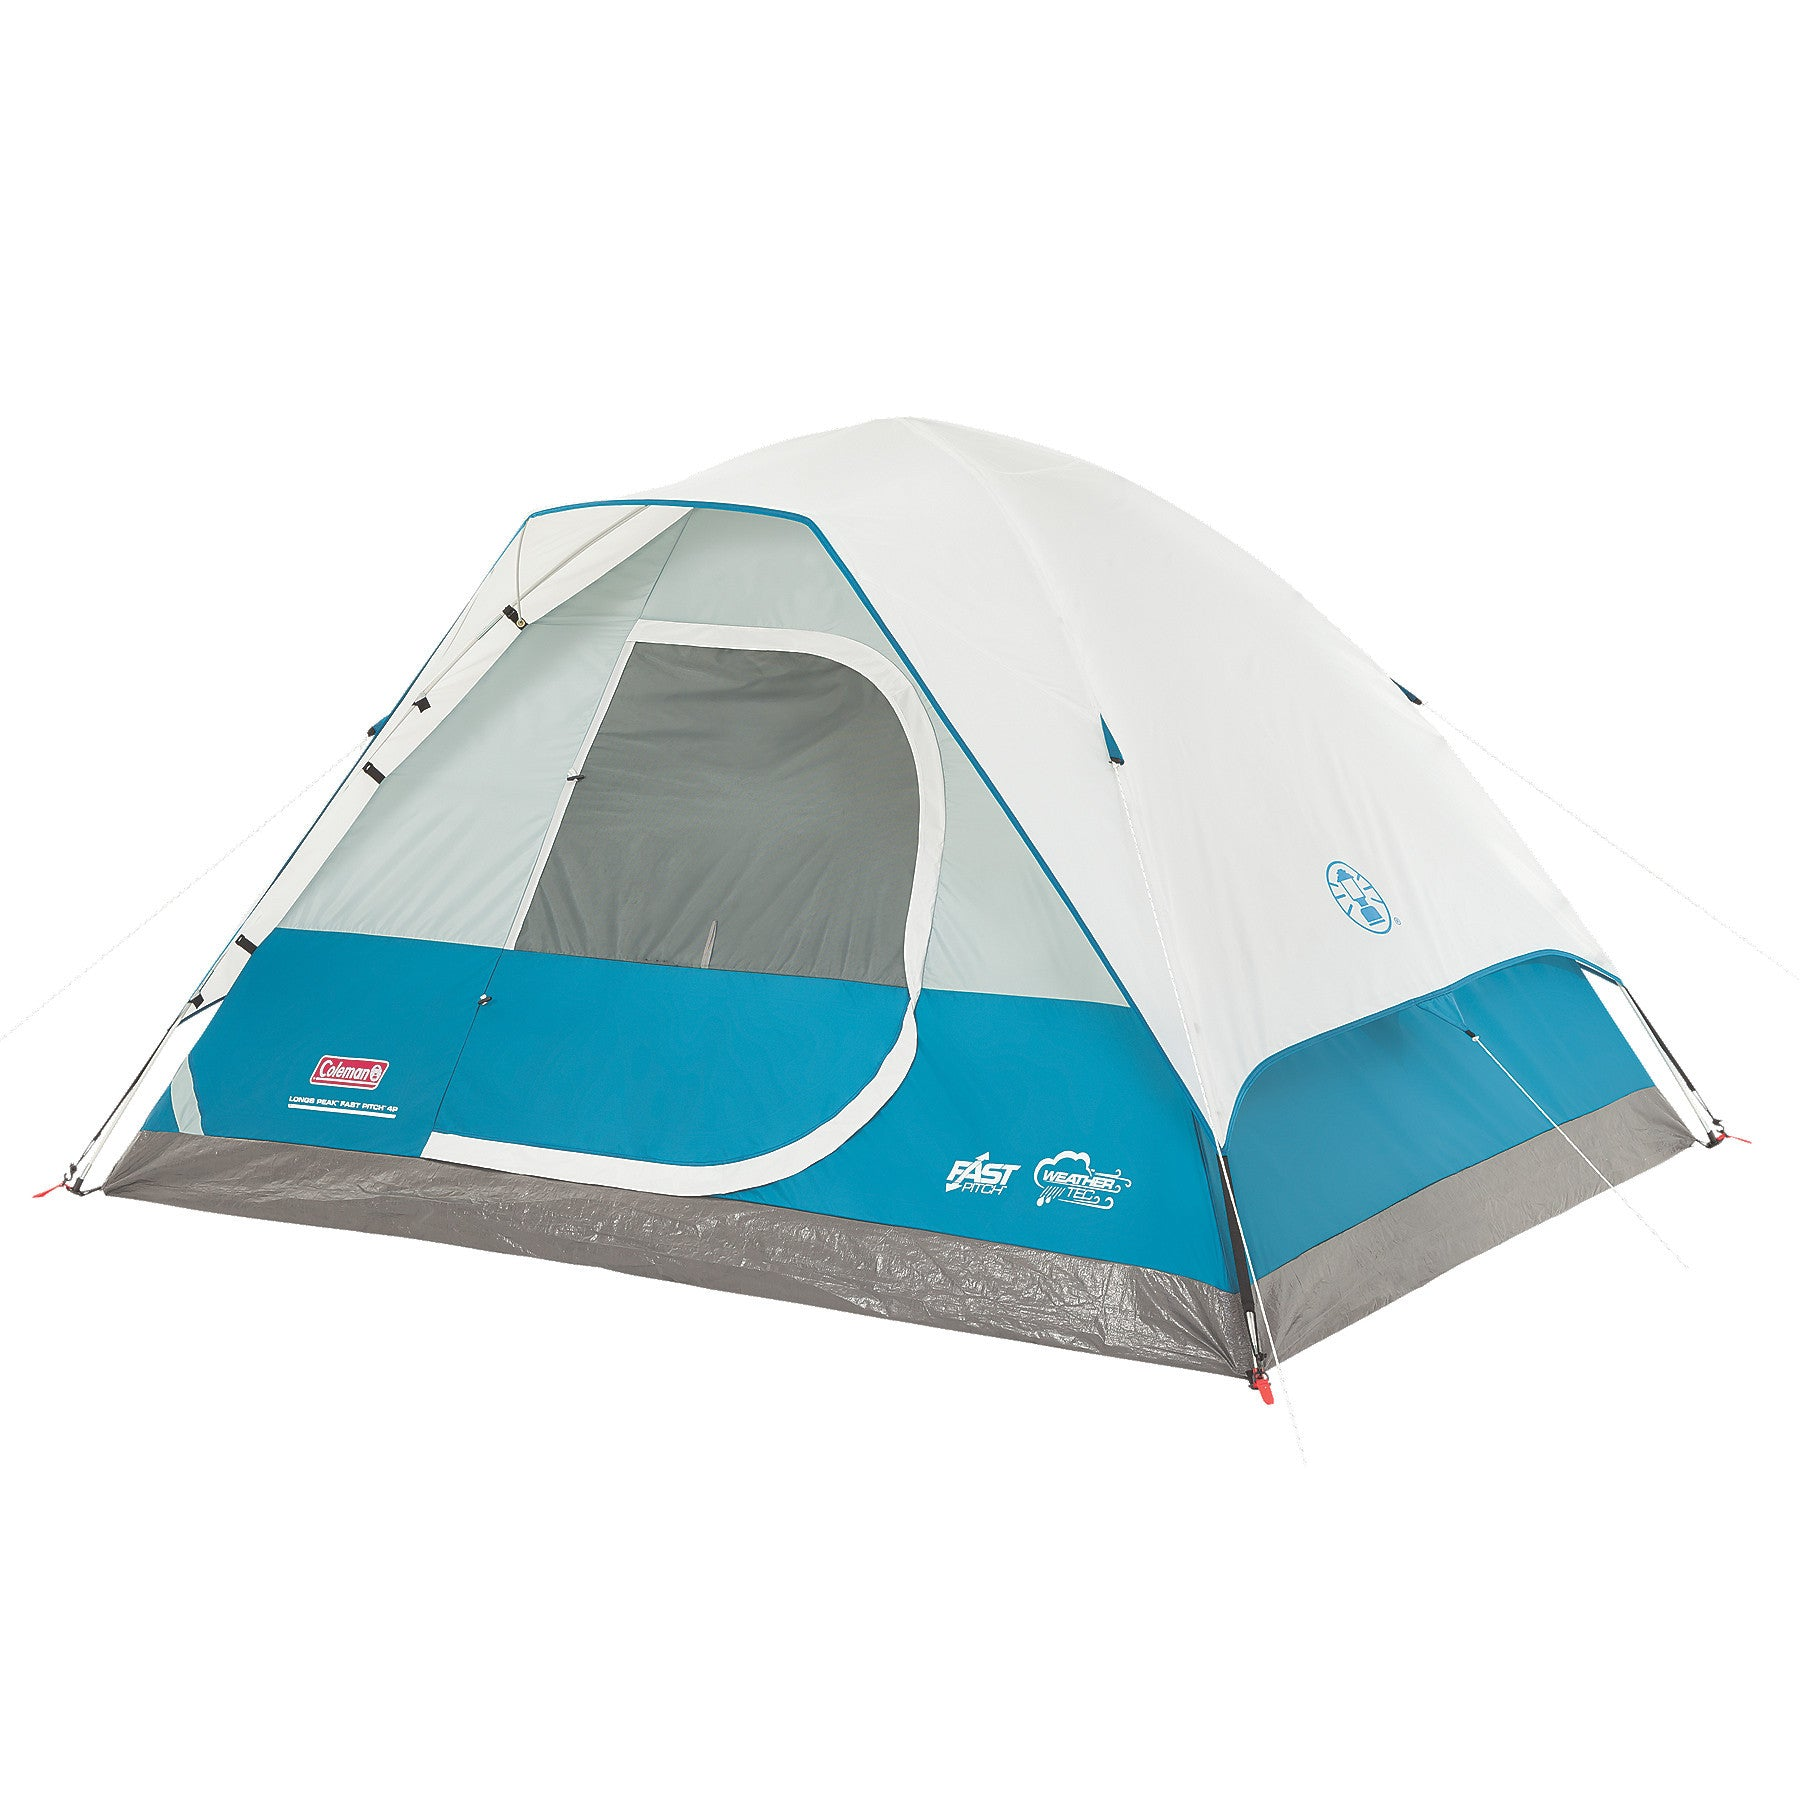 Coleman Longs Peak™ 4-Person Fast Pitch Dome Tent  sc 1 st  Outdoor Living Canada & Coleman Longs Peak™ 4-Person Fast Pitch Dome Tent u2013 Outdoor Living ...